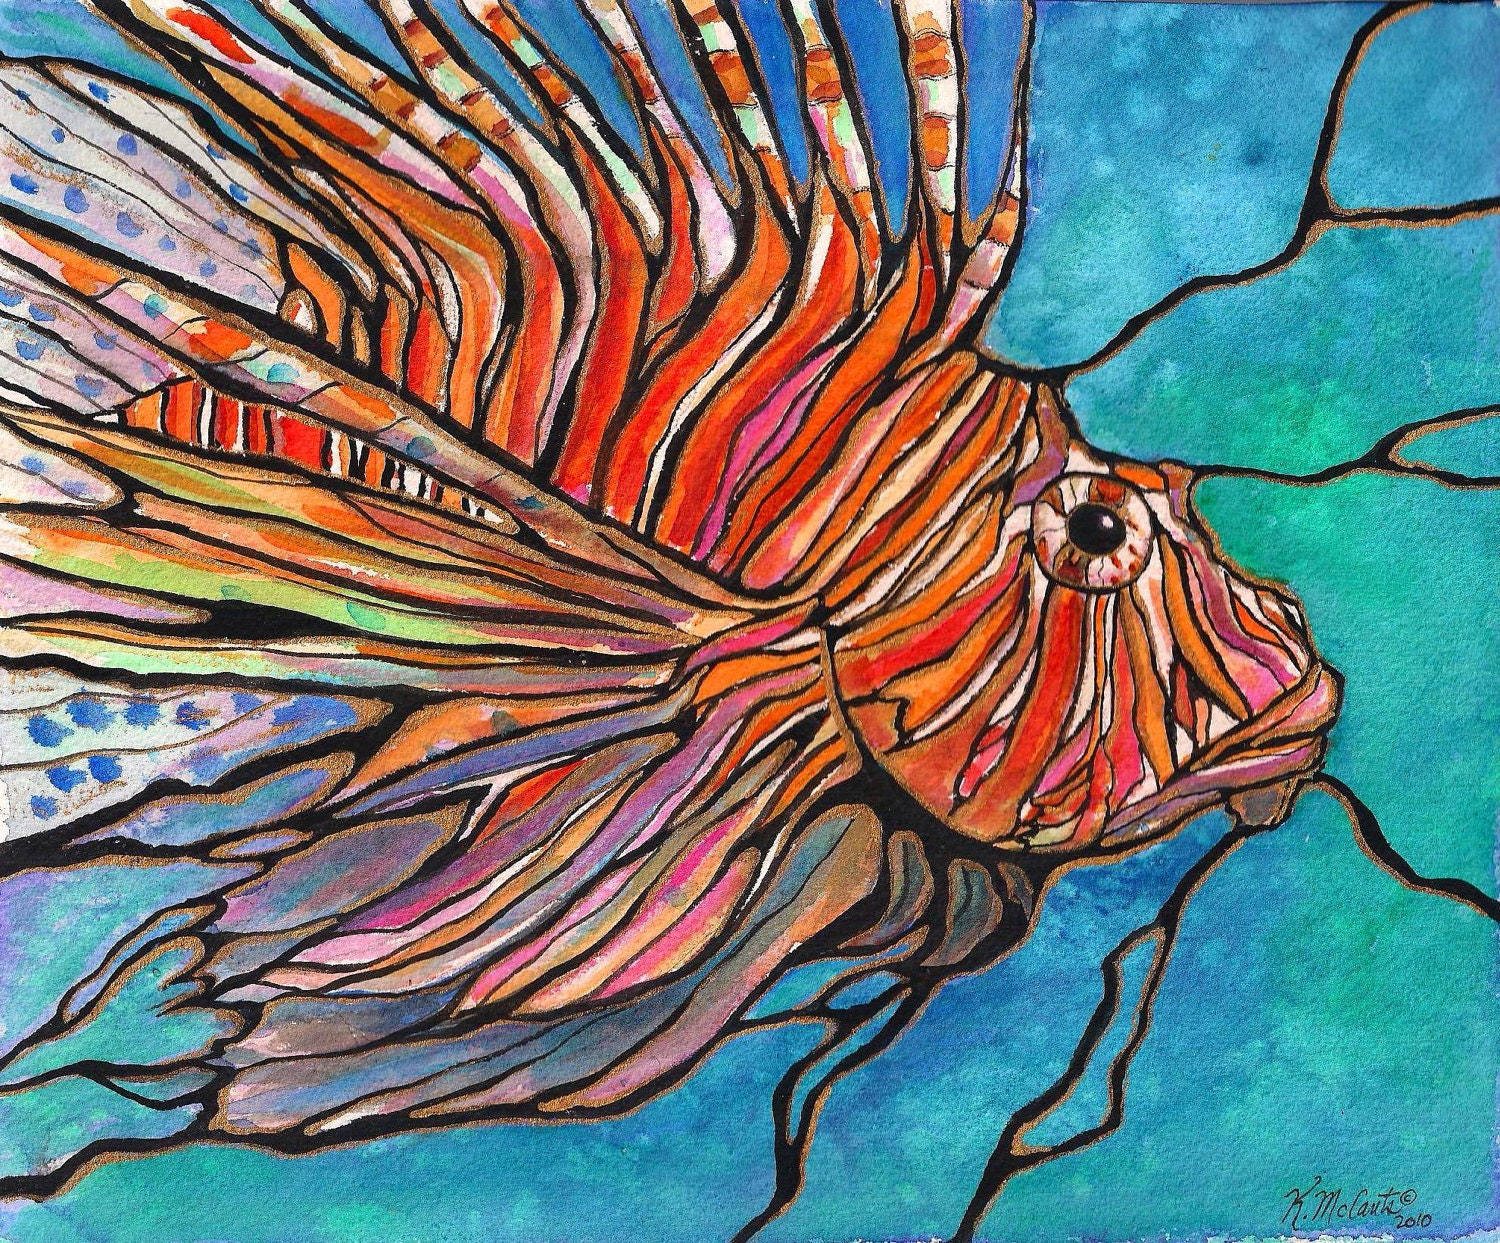 """Colorful LIONFISH Tropical Fish Coral Reef Art 8""""x10"""" PRINT of original by K.McCants Cool Abstract Stained Glass Style - karenmccantsart"""